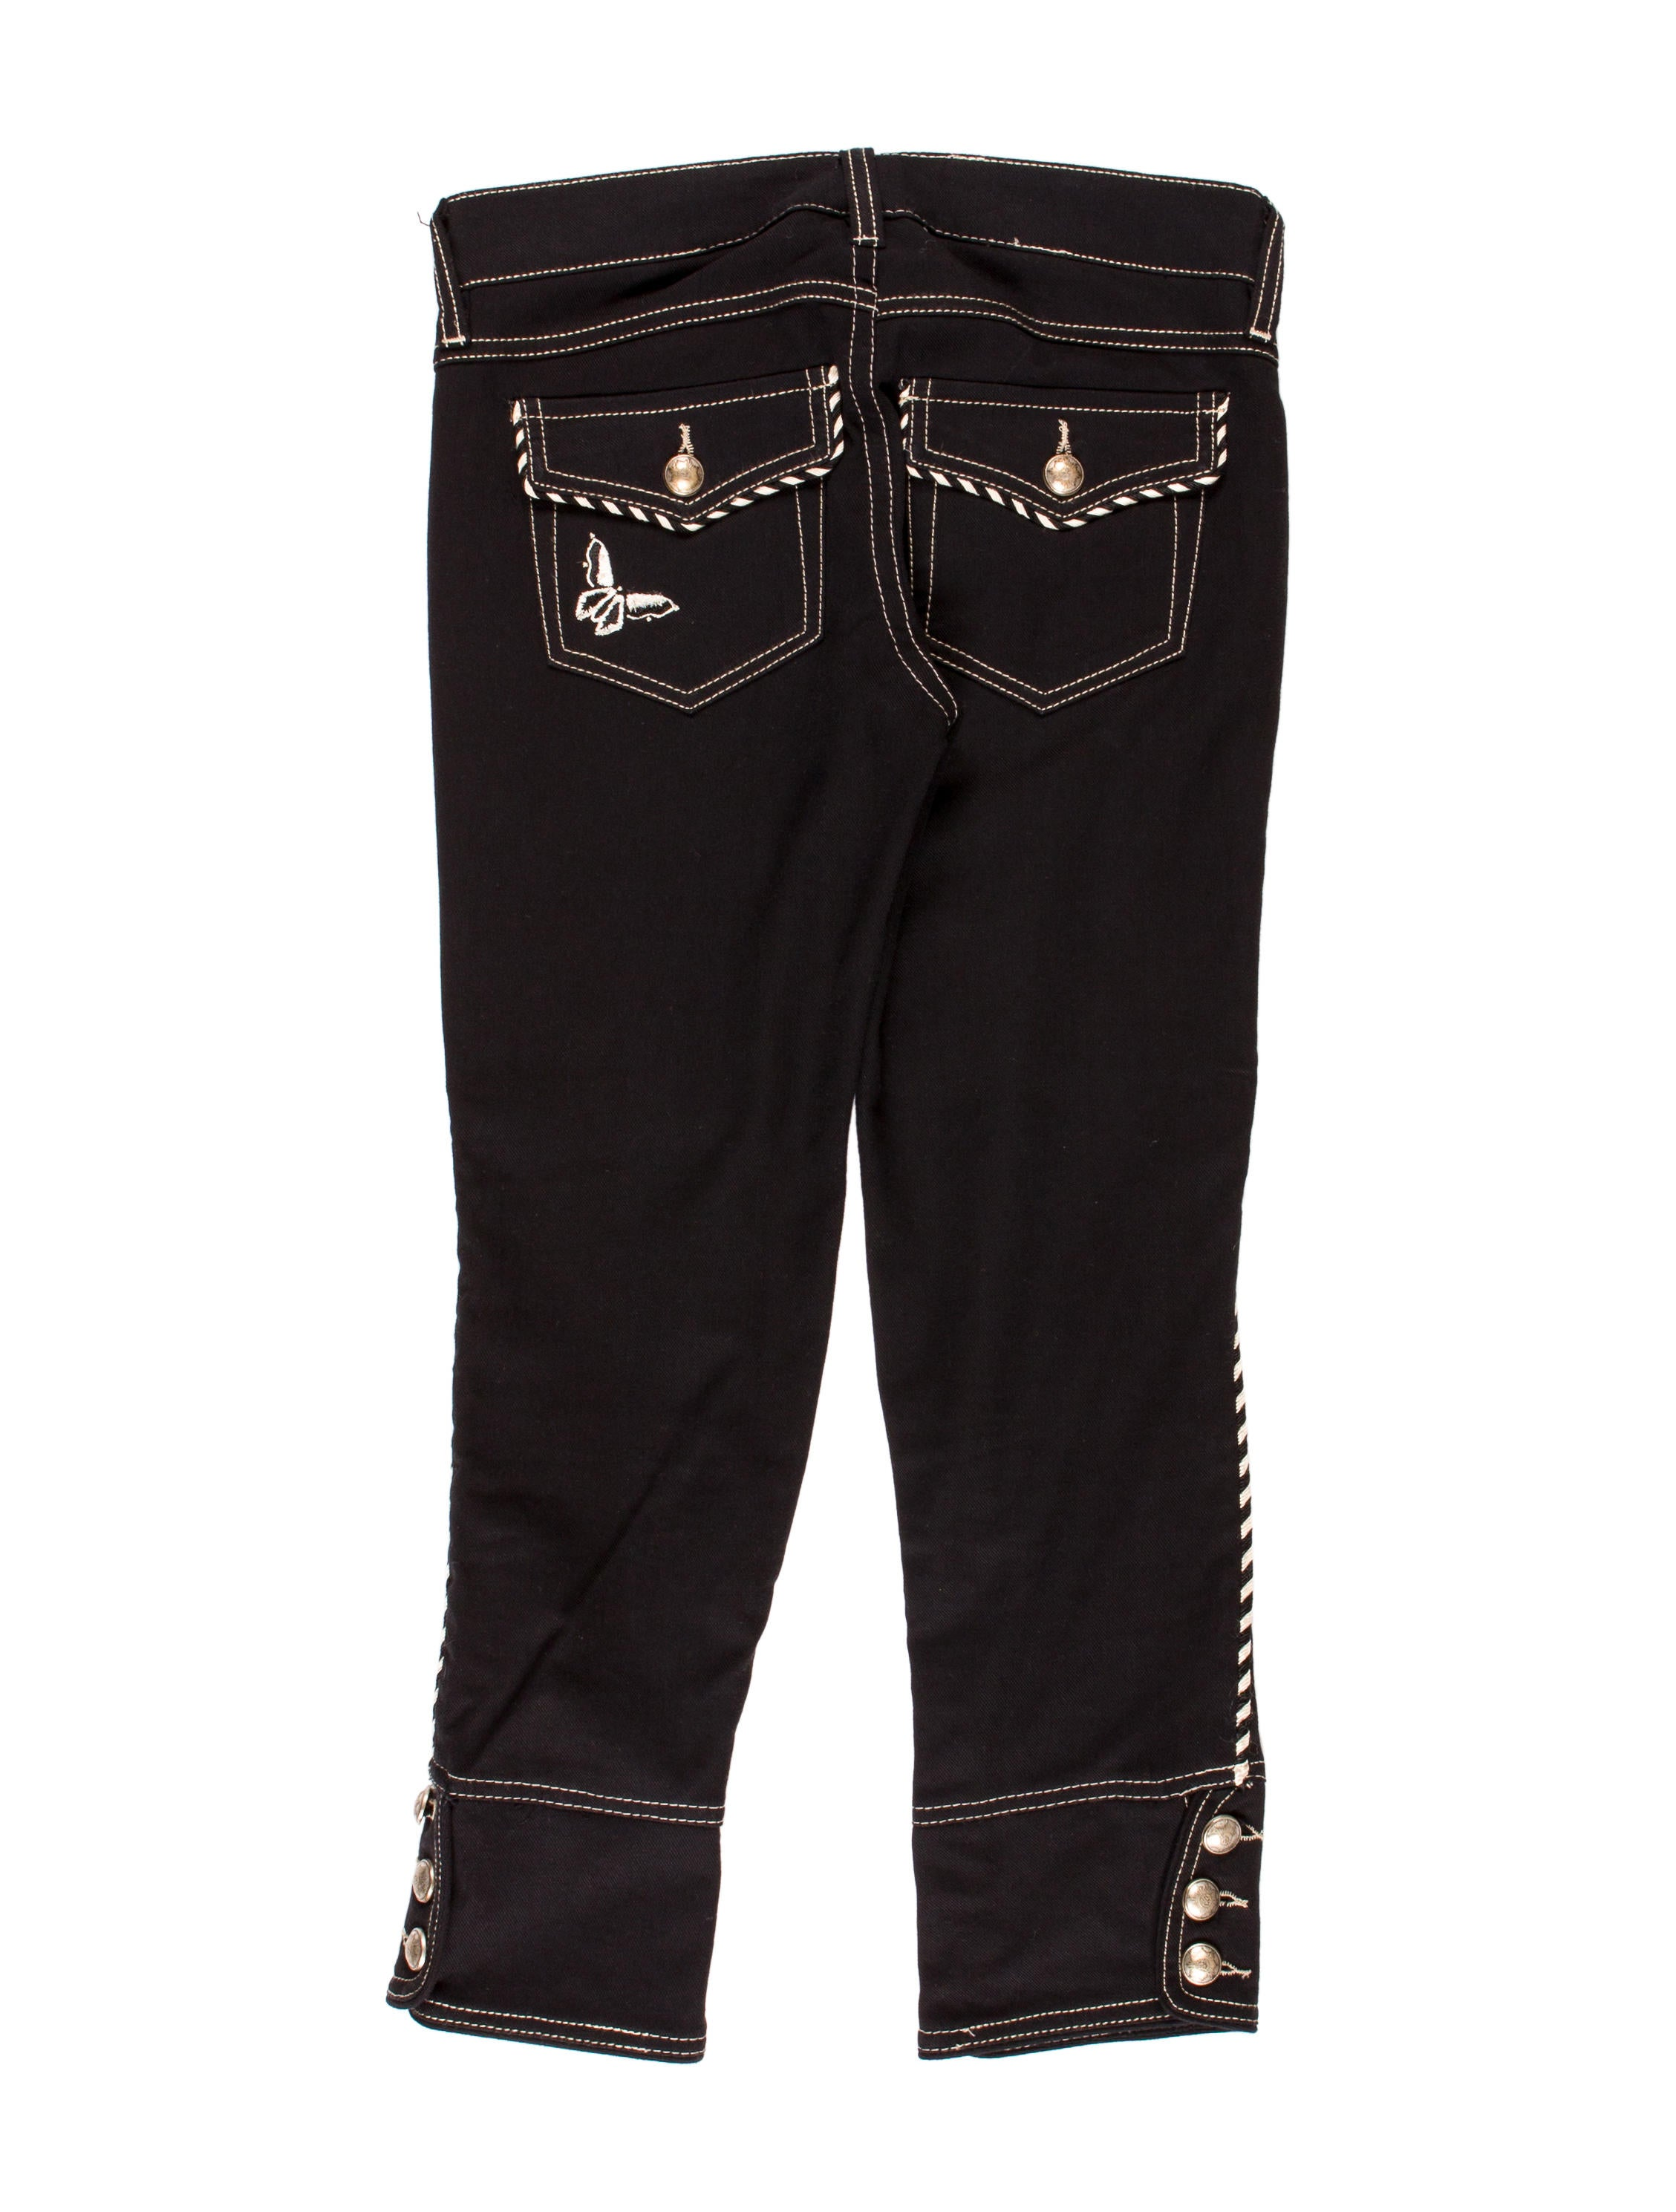 Isabel Marant Embroidered Cropped Jeans - Clothing - ISA38046 | The RealReal